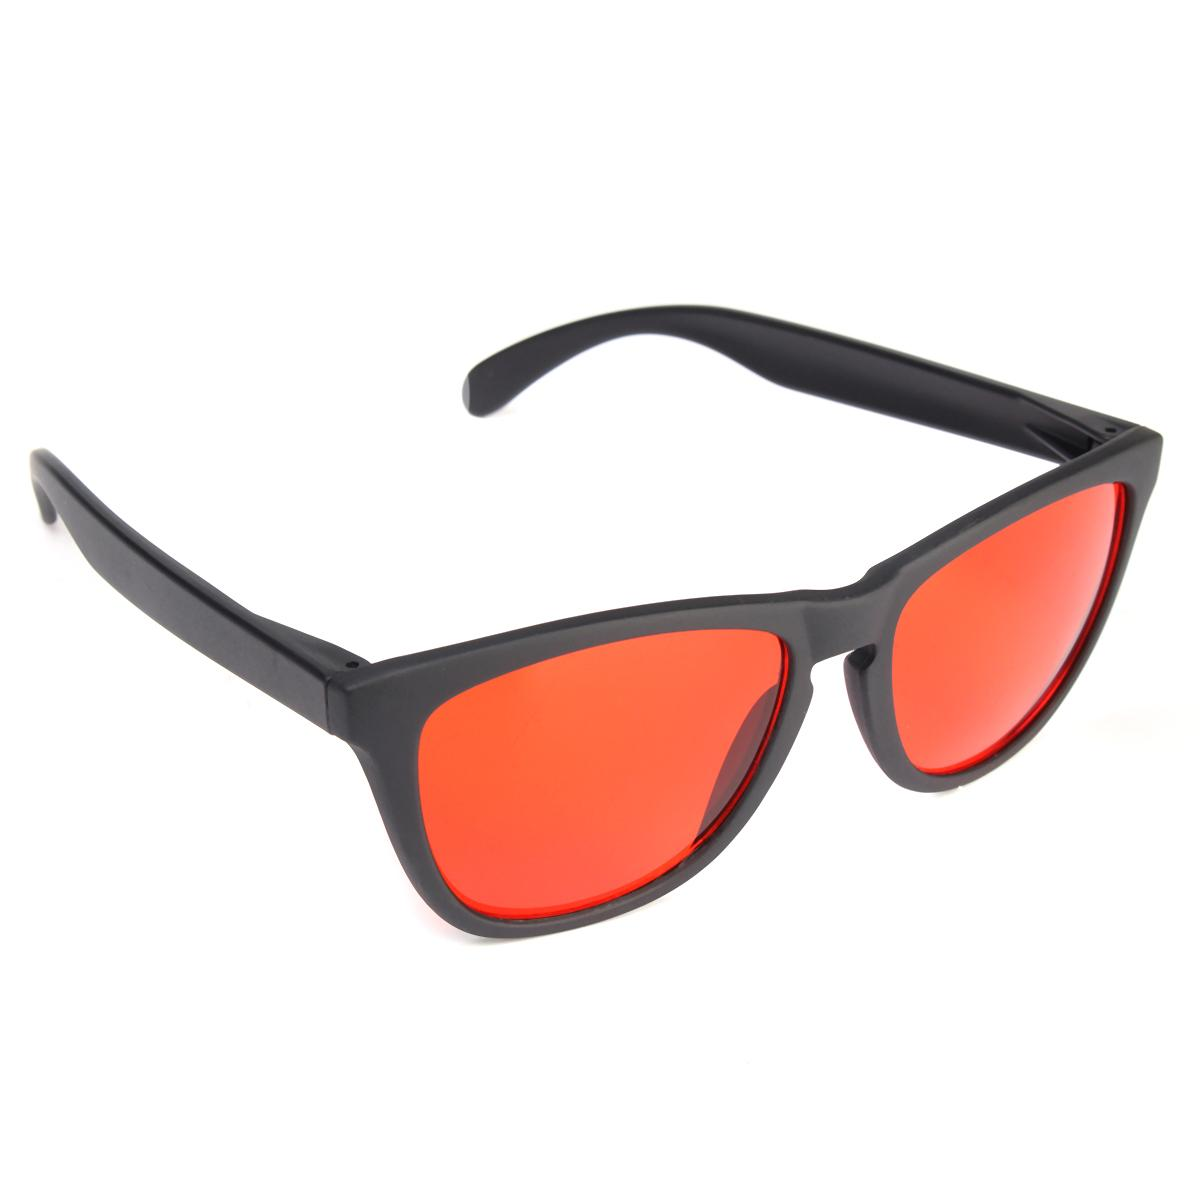 Clearance Sale】Colorblindness Corrective Glasses + Box For Red Green Color  Blind Vision Care: Buy Online at Best Prices in Pakistan | Daraz.pk